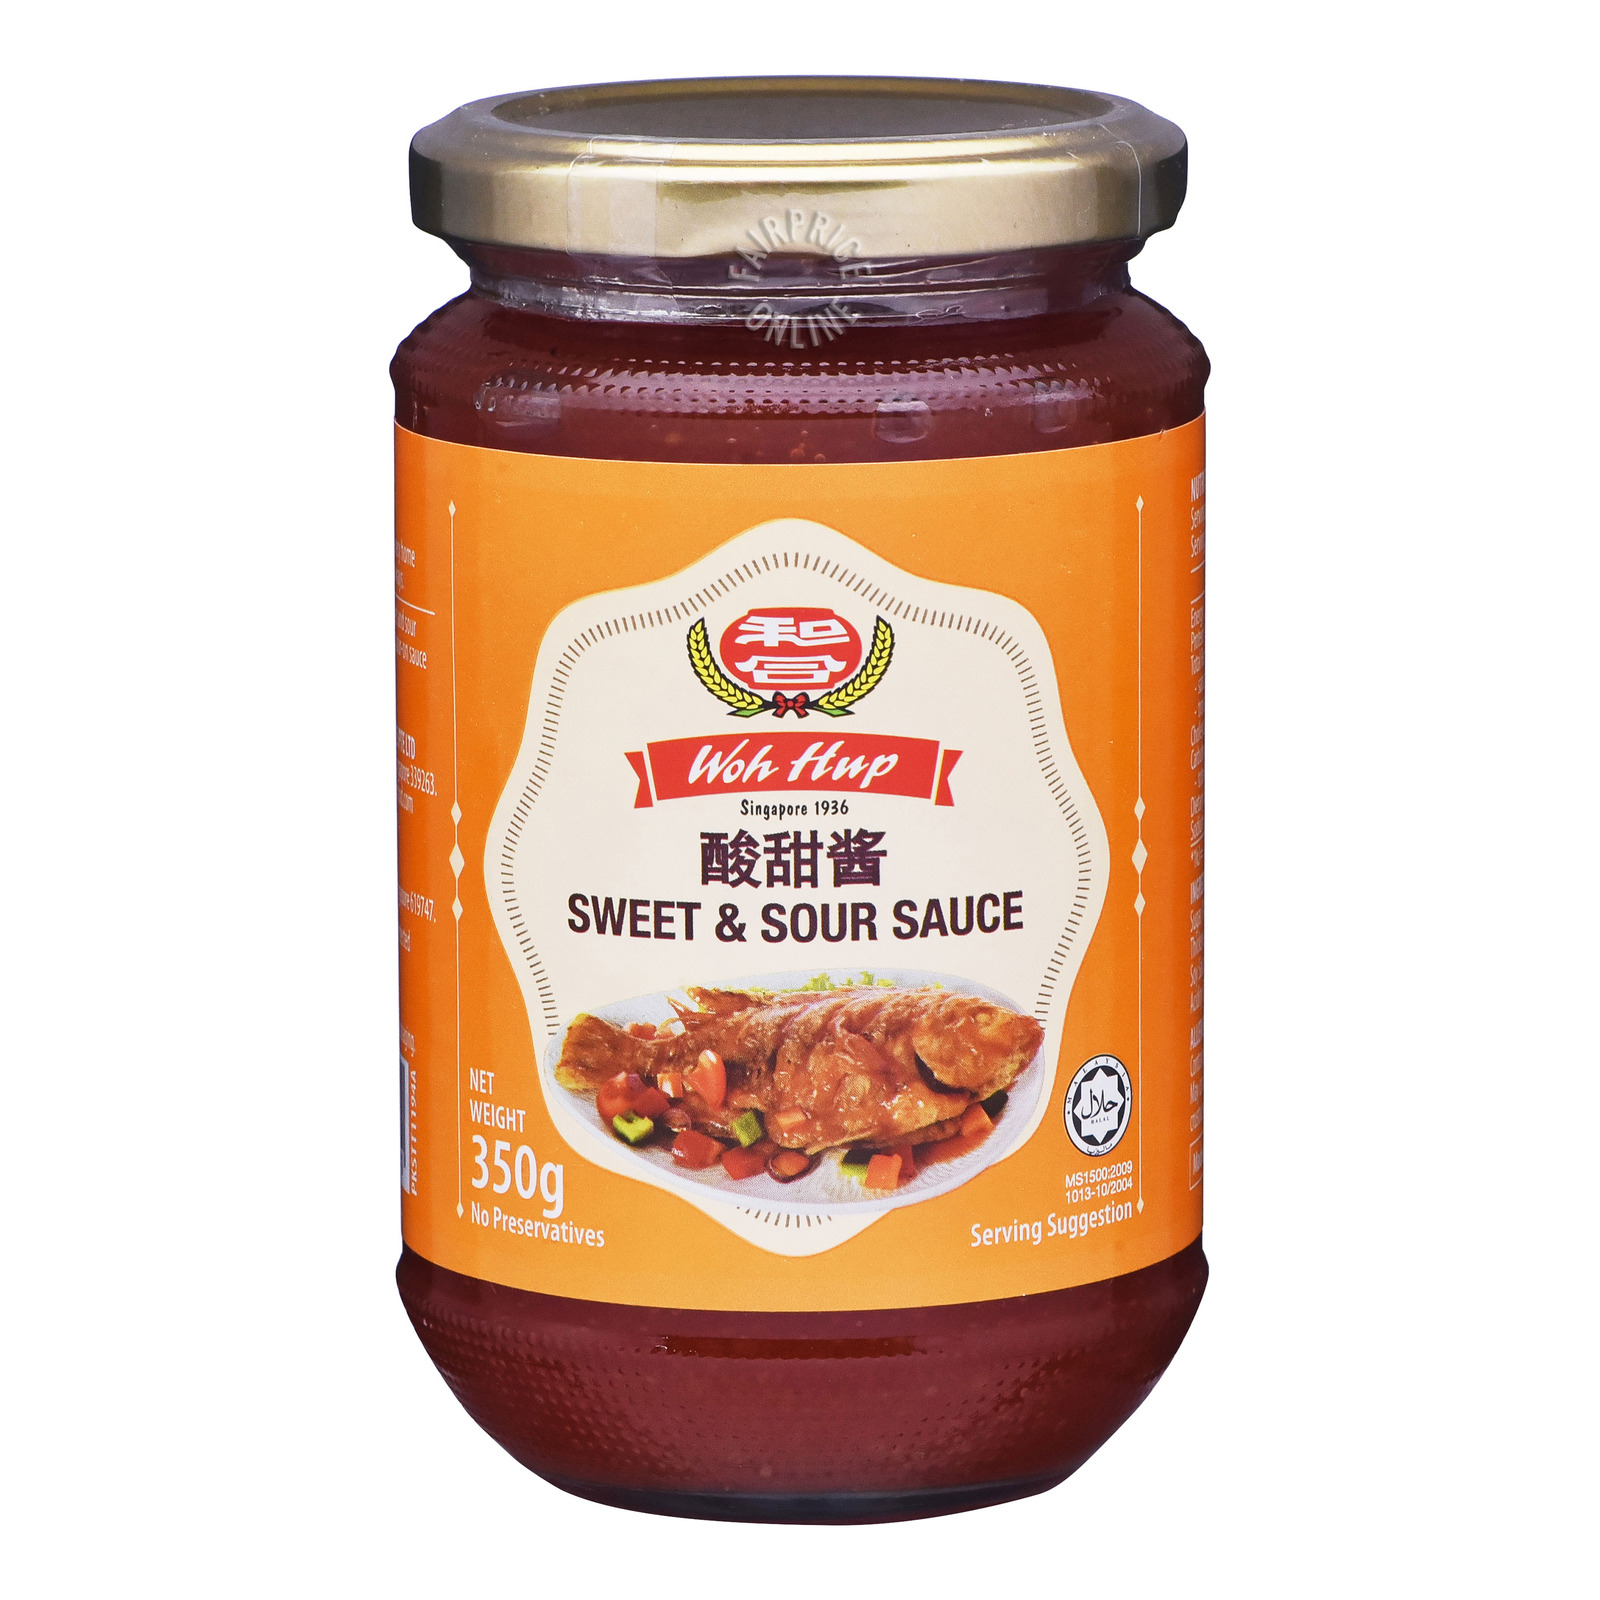 Woh Hup Sauce - Sweet and Sour